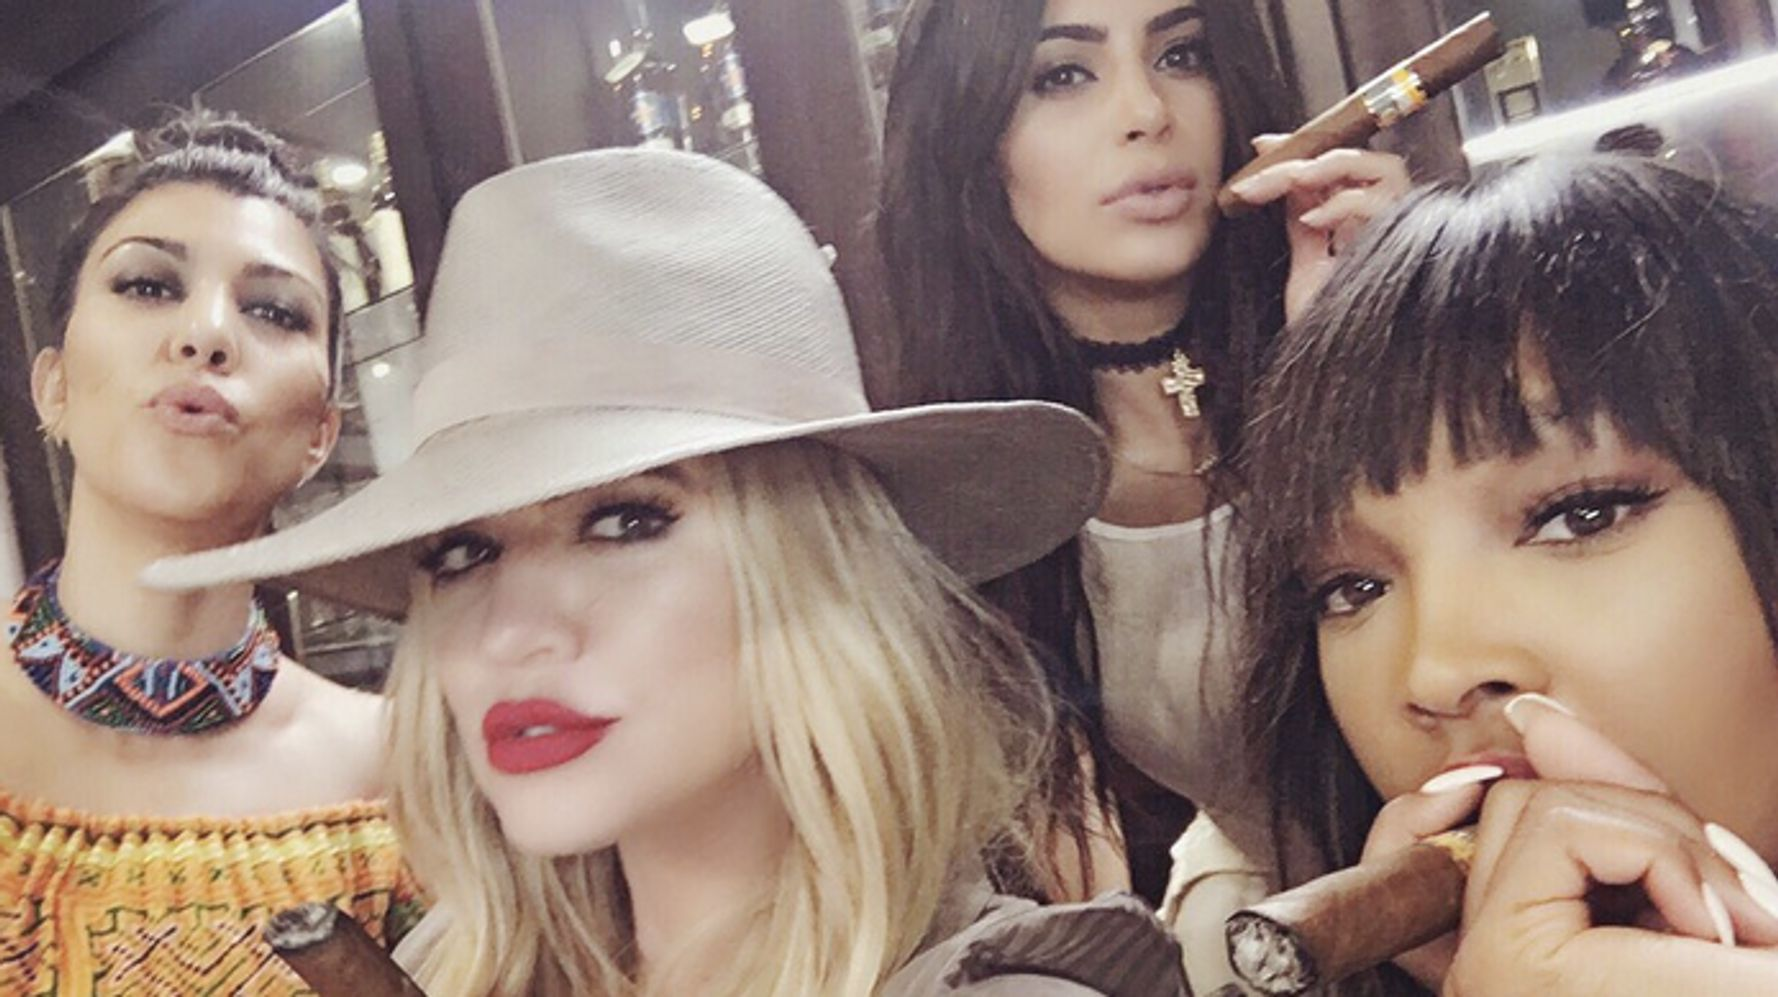 The Kardashians Are Already Being Annoying About Their Trip To Cuba